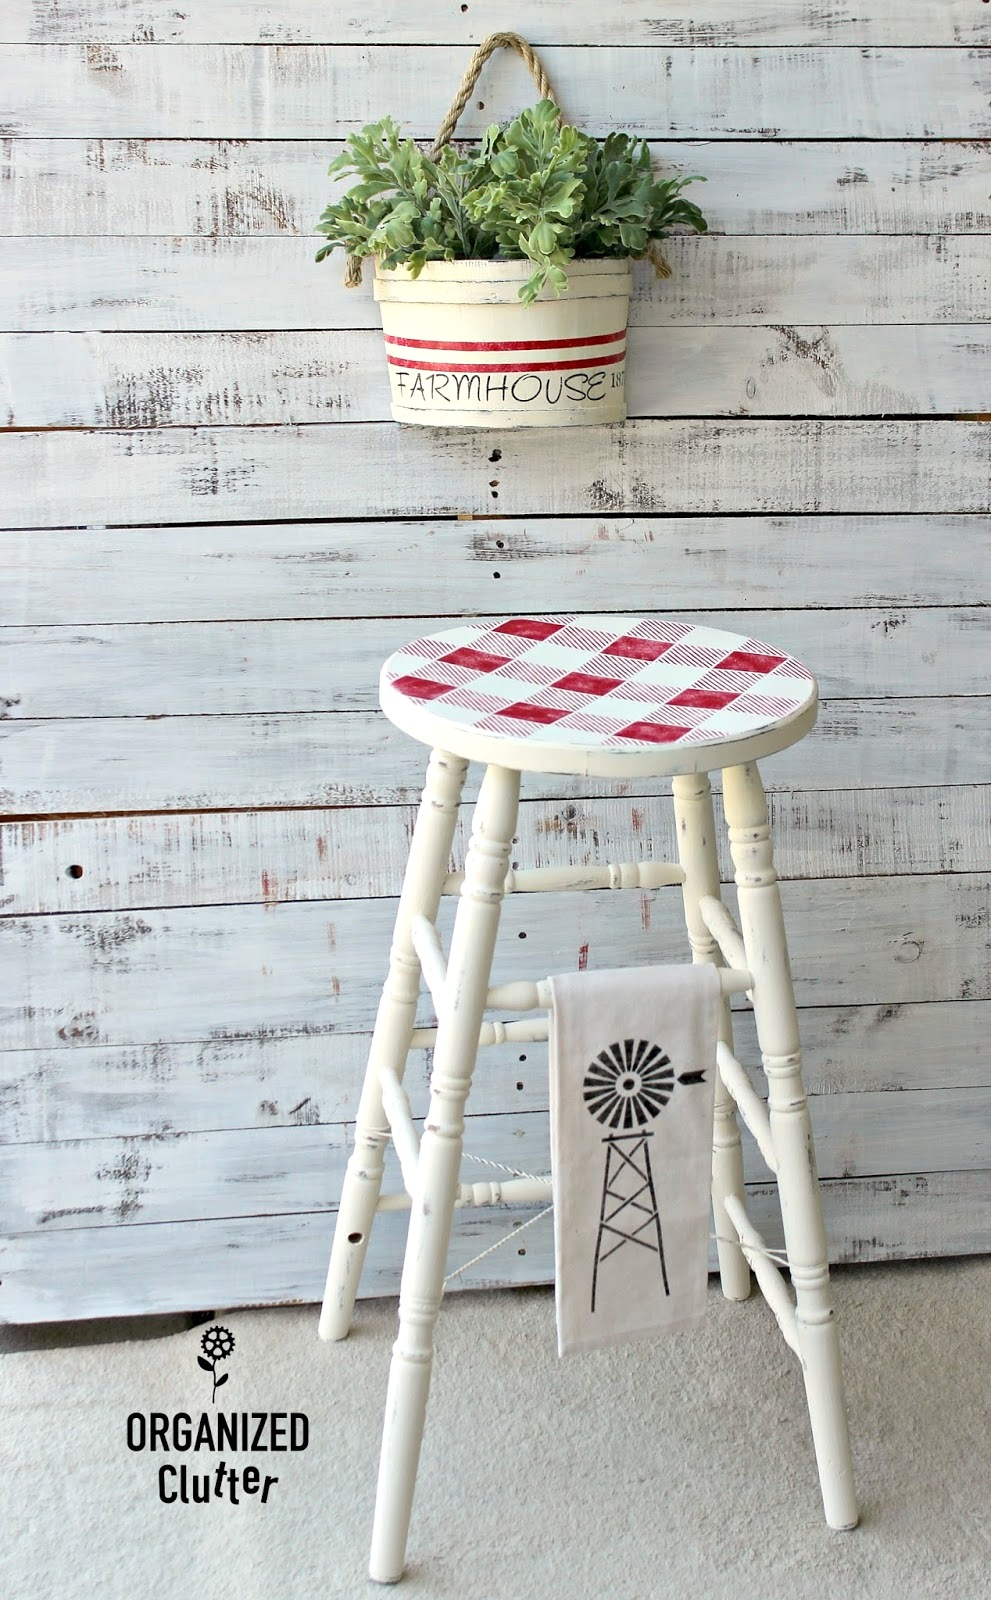 Buffalo checked stool and grain sack striped planter by Organized Clutter, featured on Funky Junk Interiors